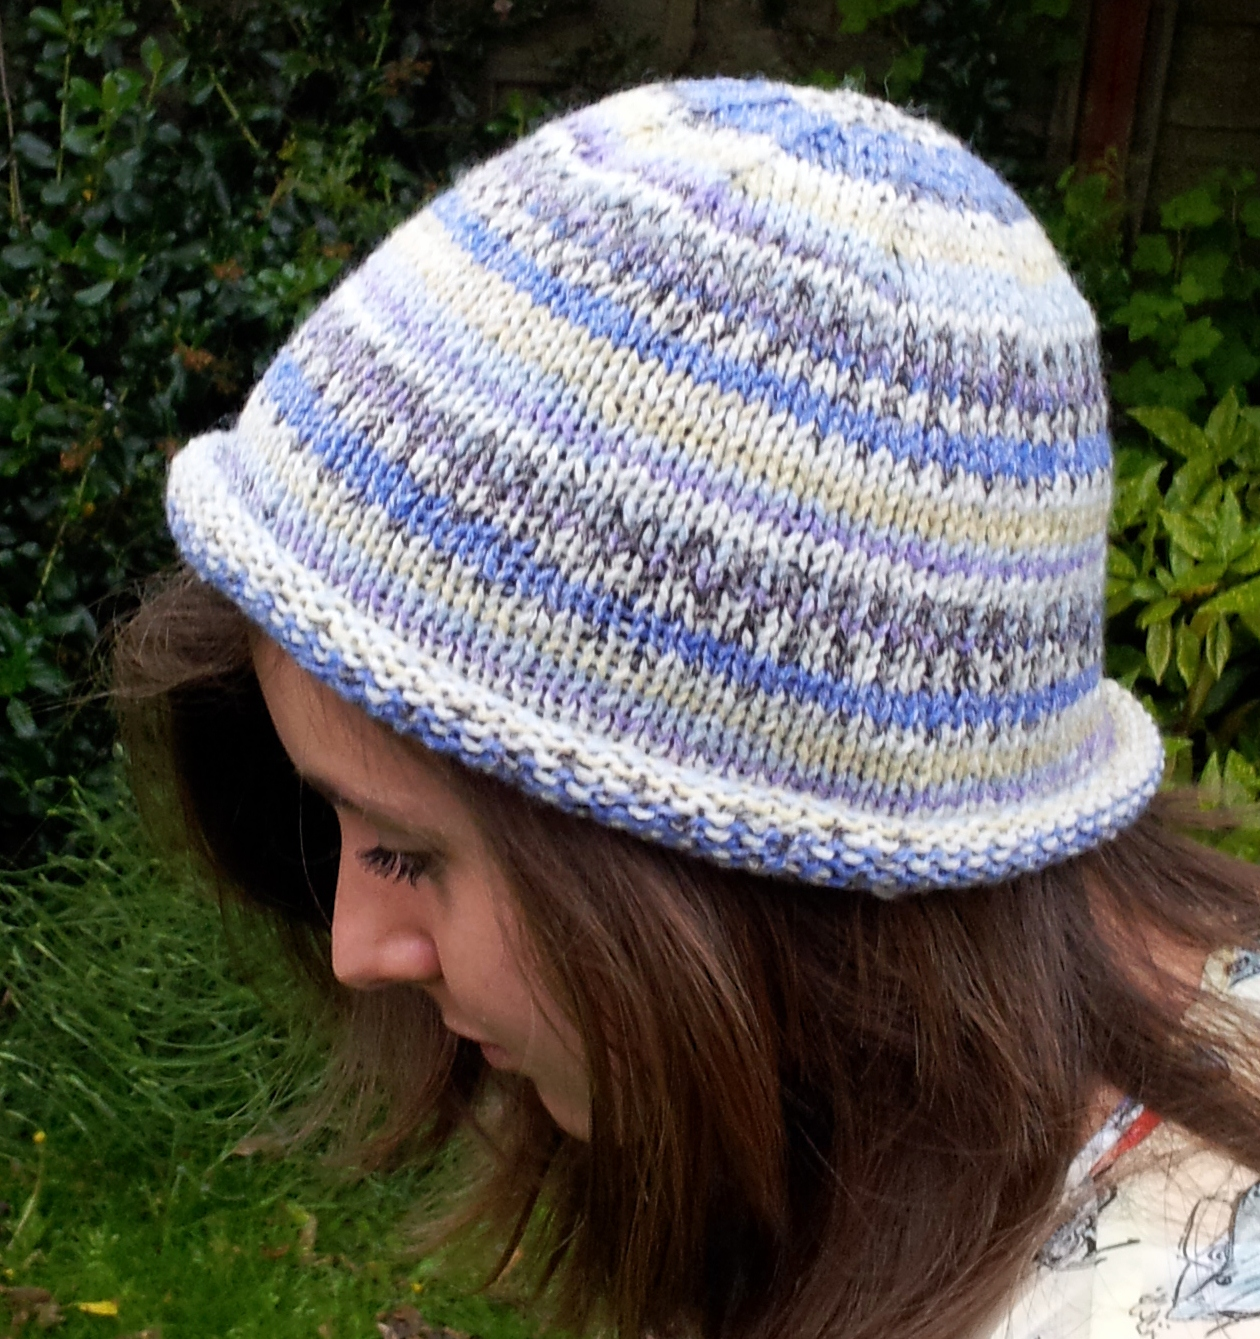 Easy Bootie Knitting Pattern : Knitted Rolled Brim Beanie Hat   Free beginners pattern thestitchsharer